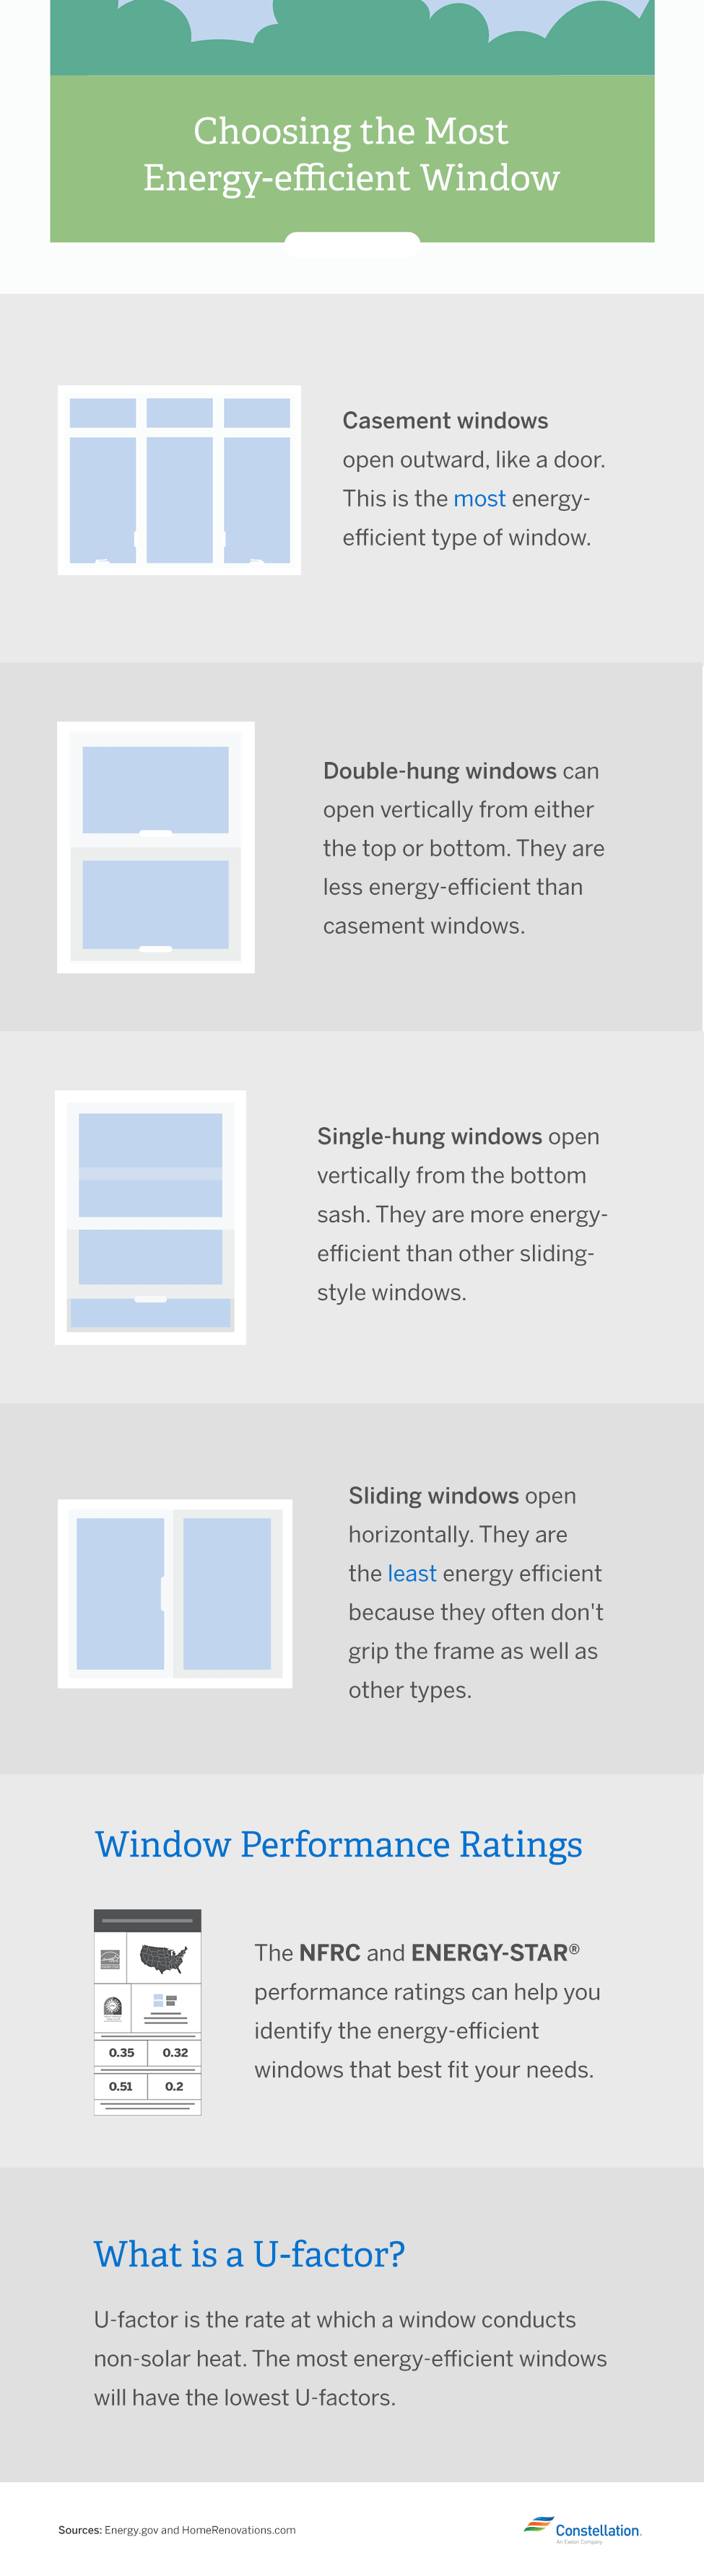 energy efficiency series benefits of energy efficient windows